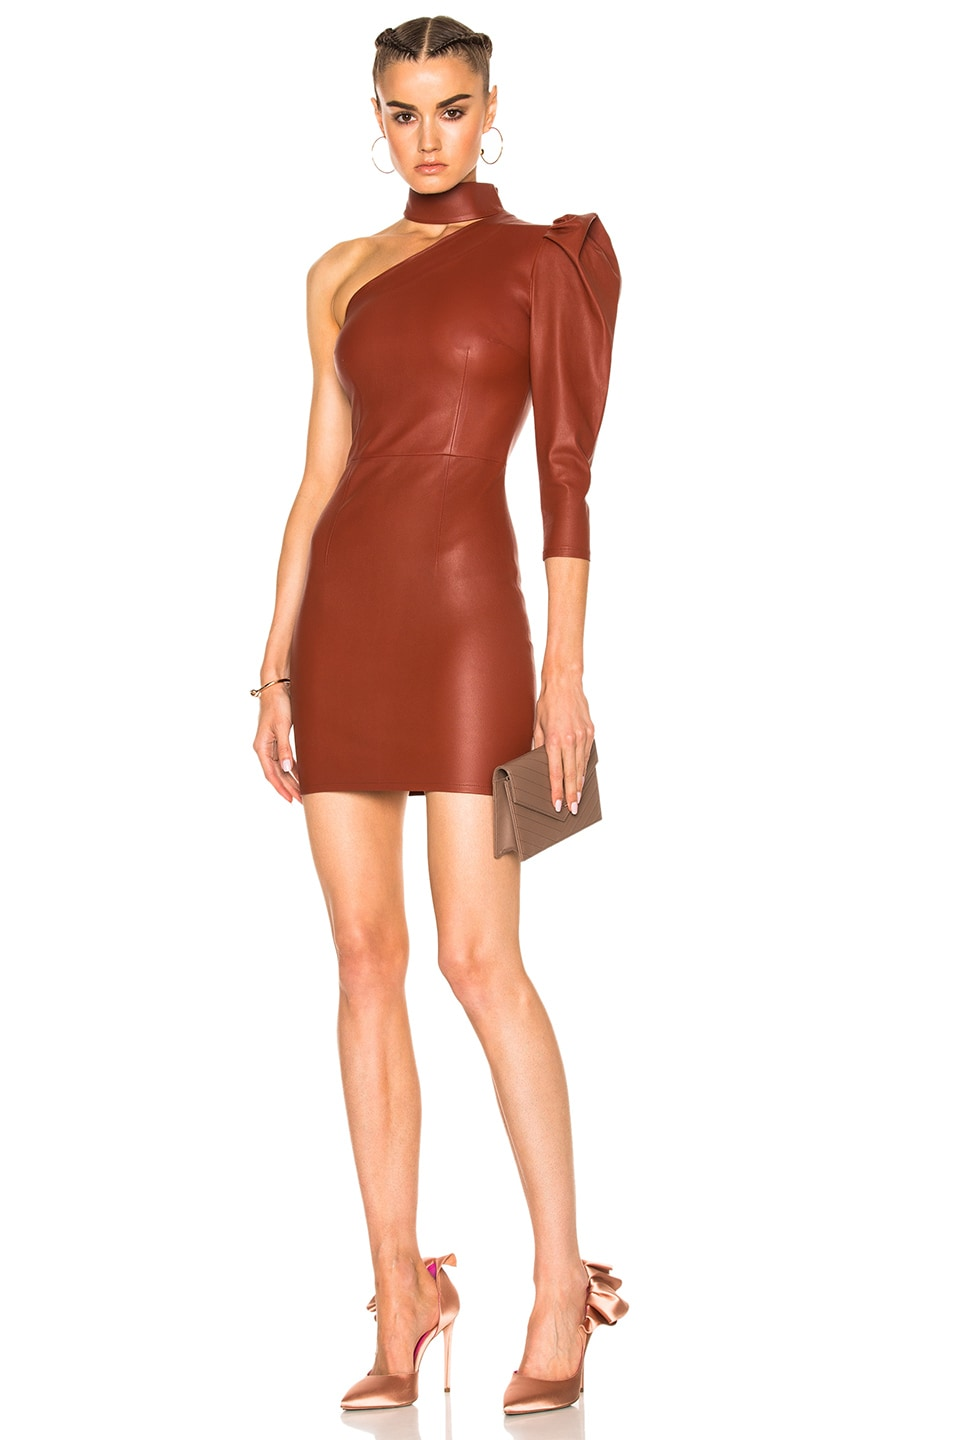 dc872b284d Image 1 of Zeynep Arcay One Shoulder Stretch Leather Dress in Brick